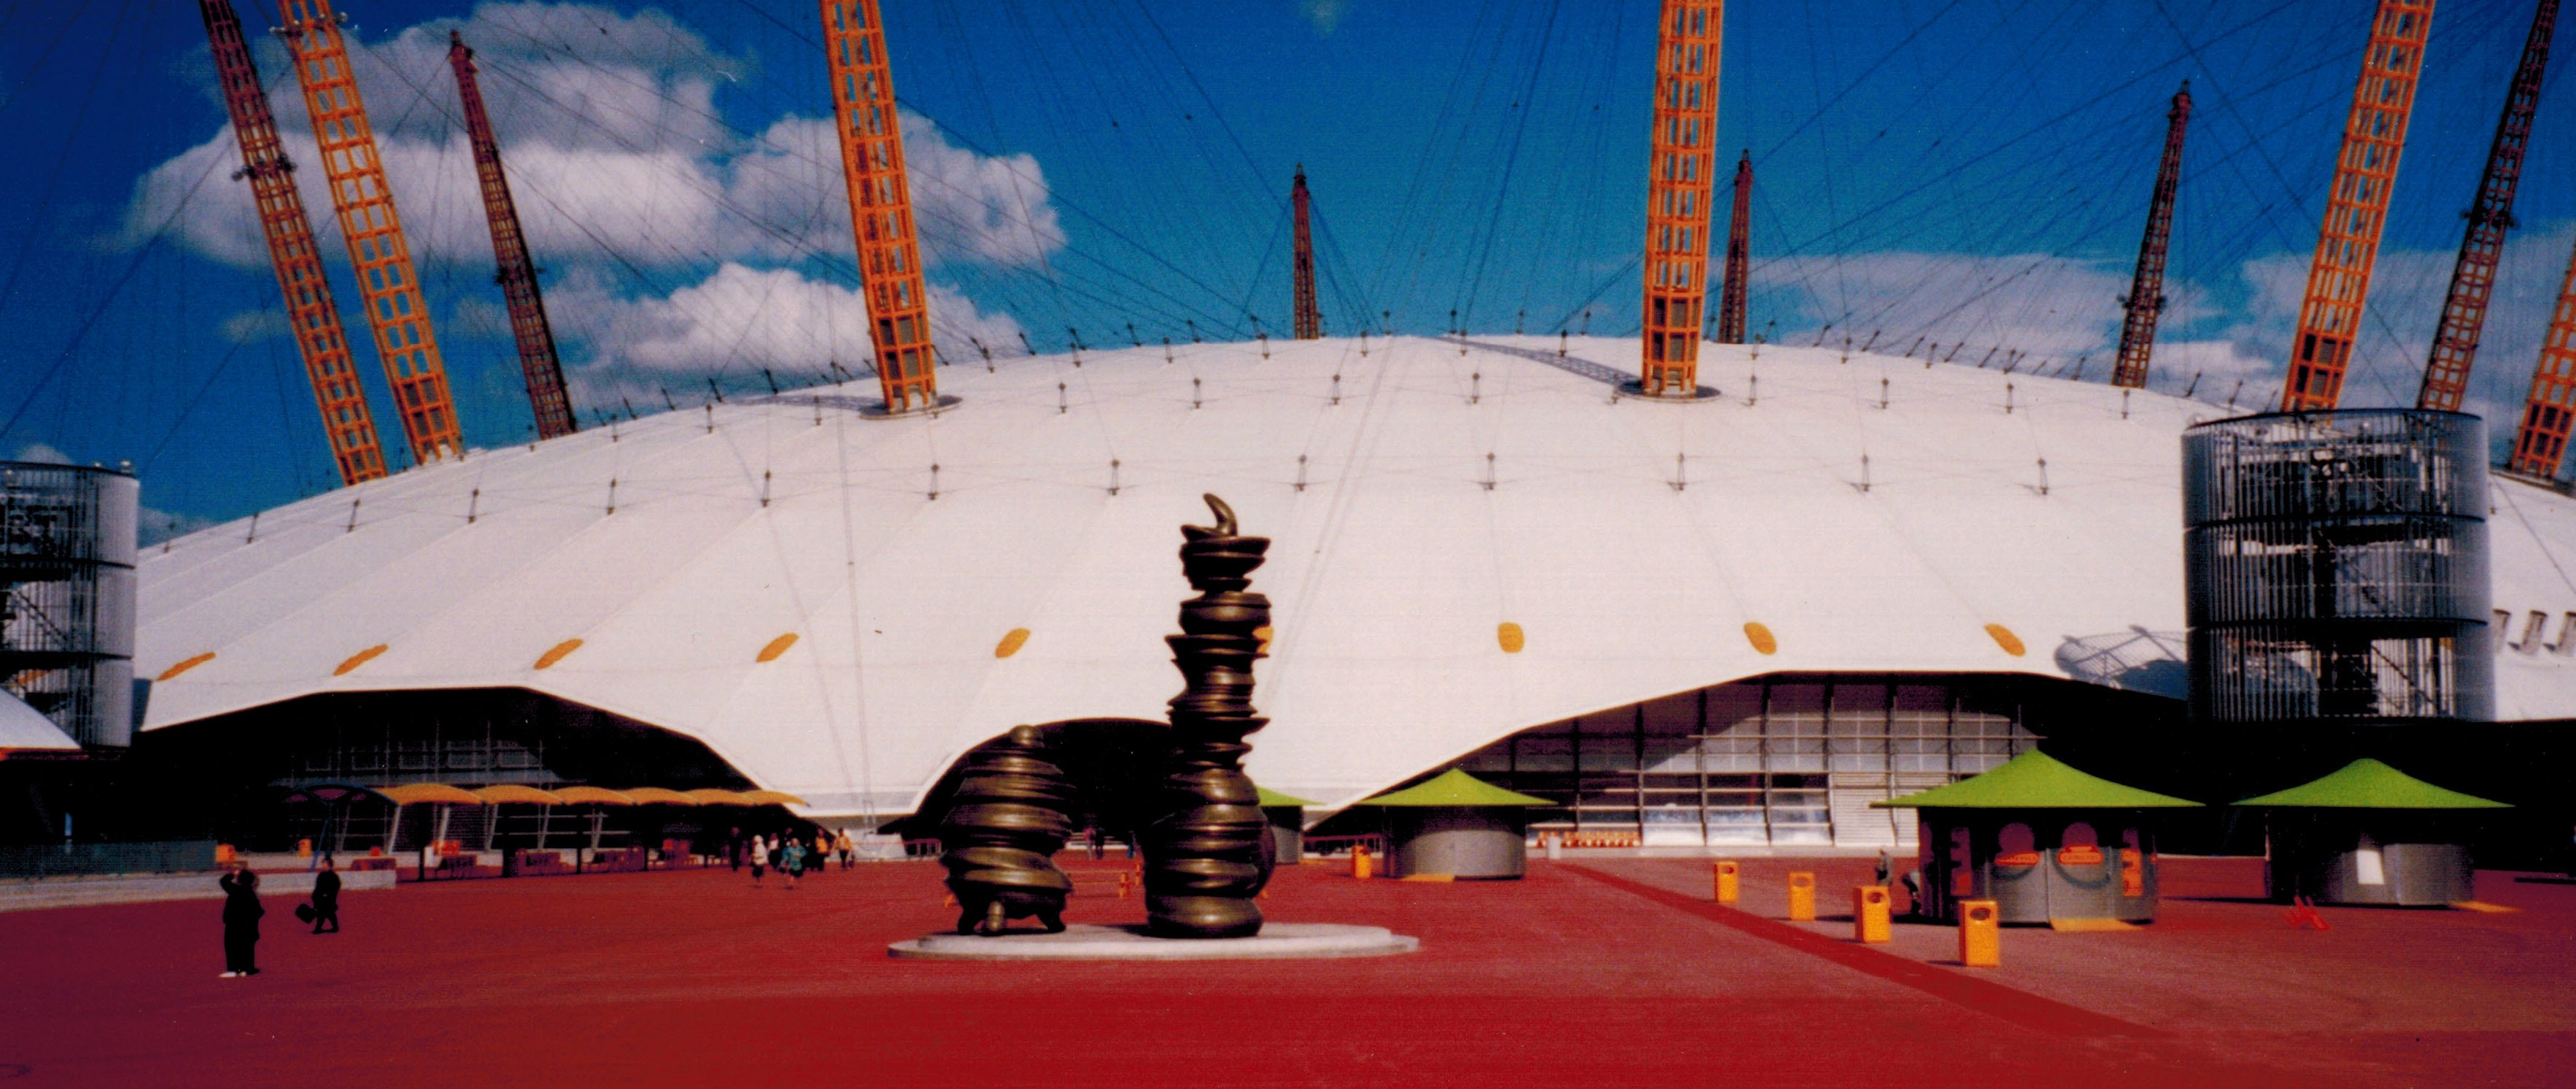 Tony cragg sculptures outside the millennium dome.jpg